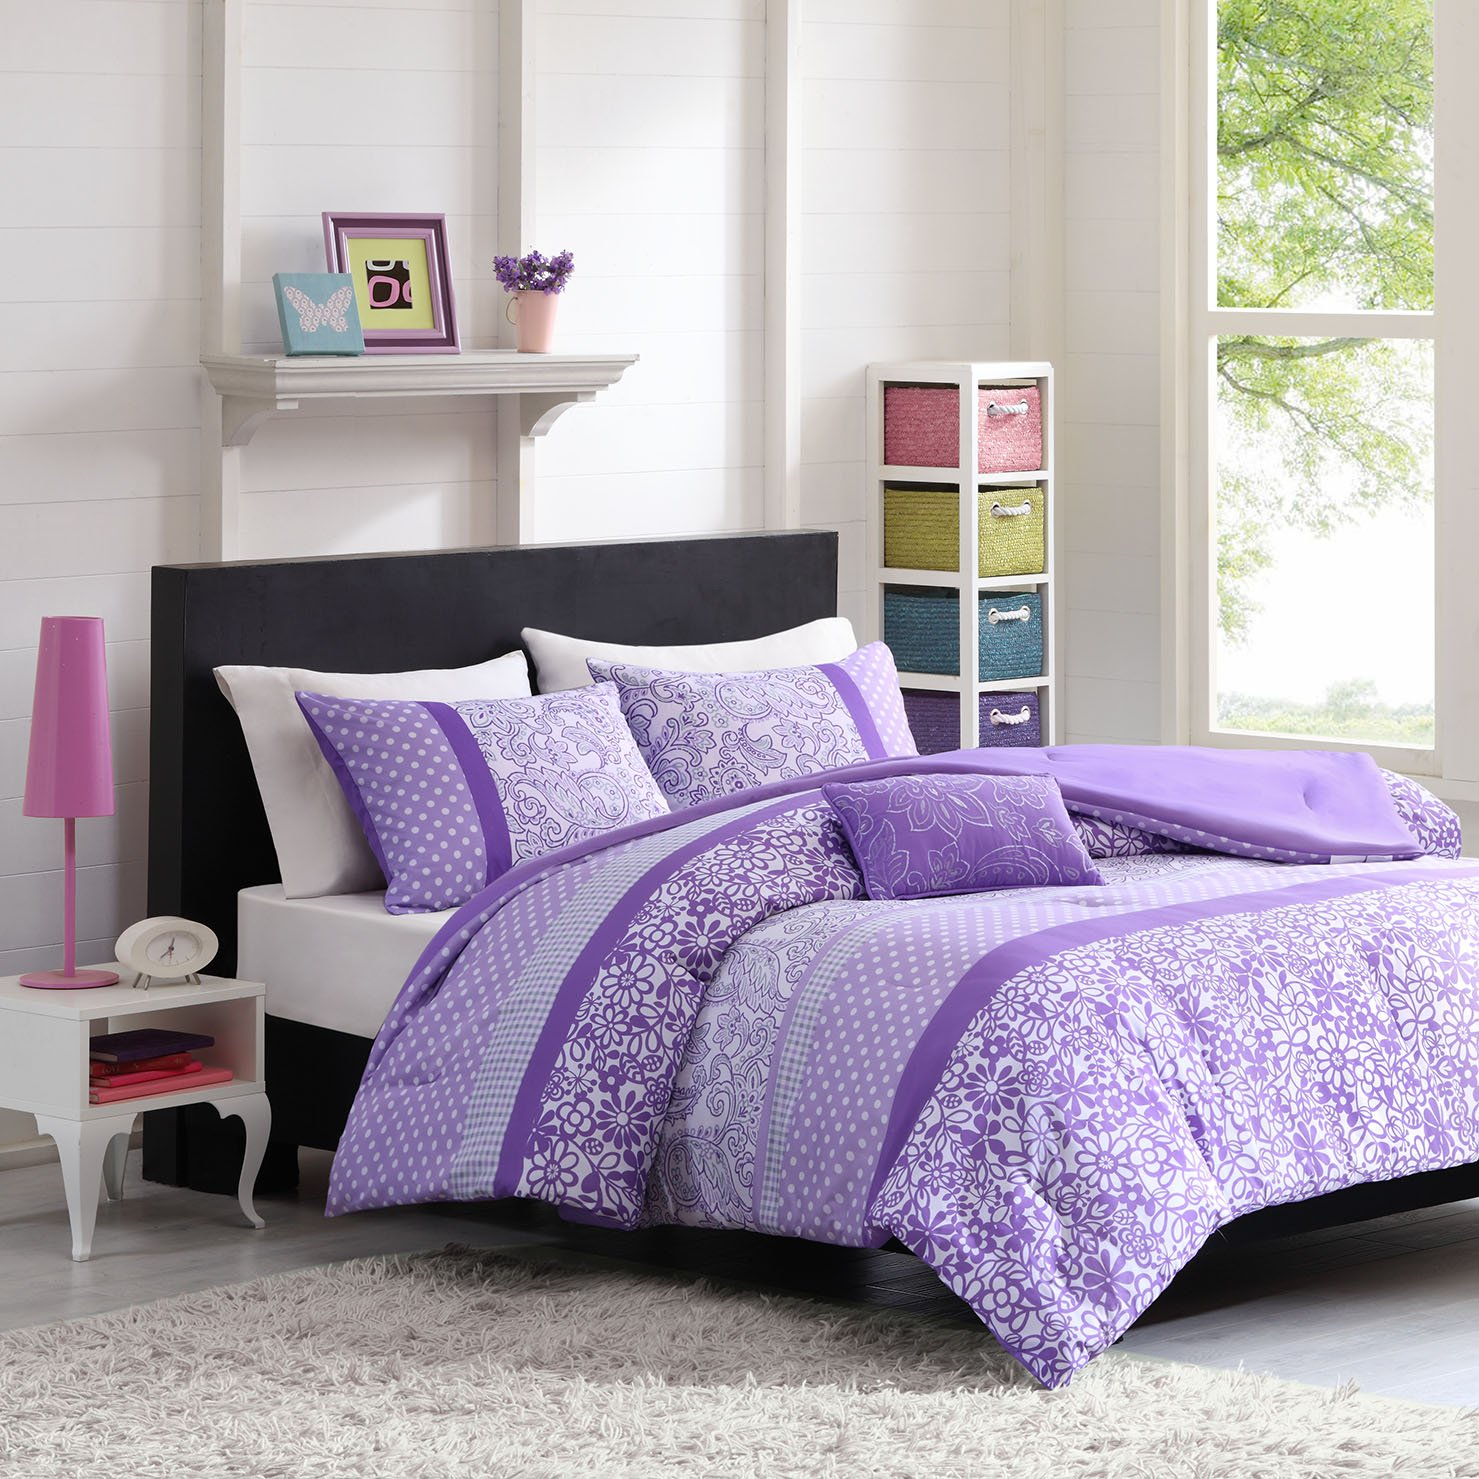 Mizone Riley 4 Piece Comforter Set, Full/Queen, Purple